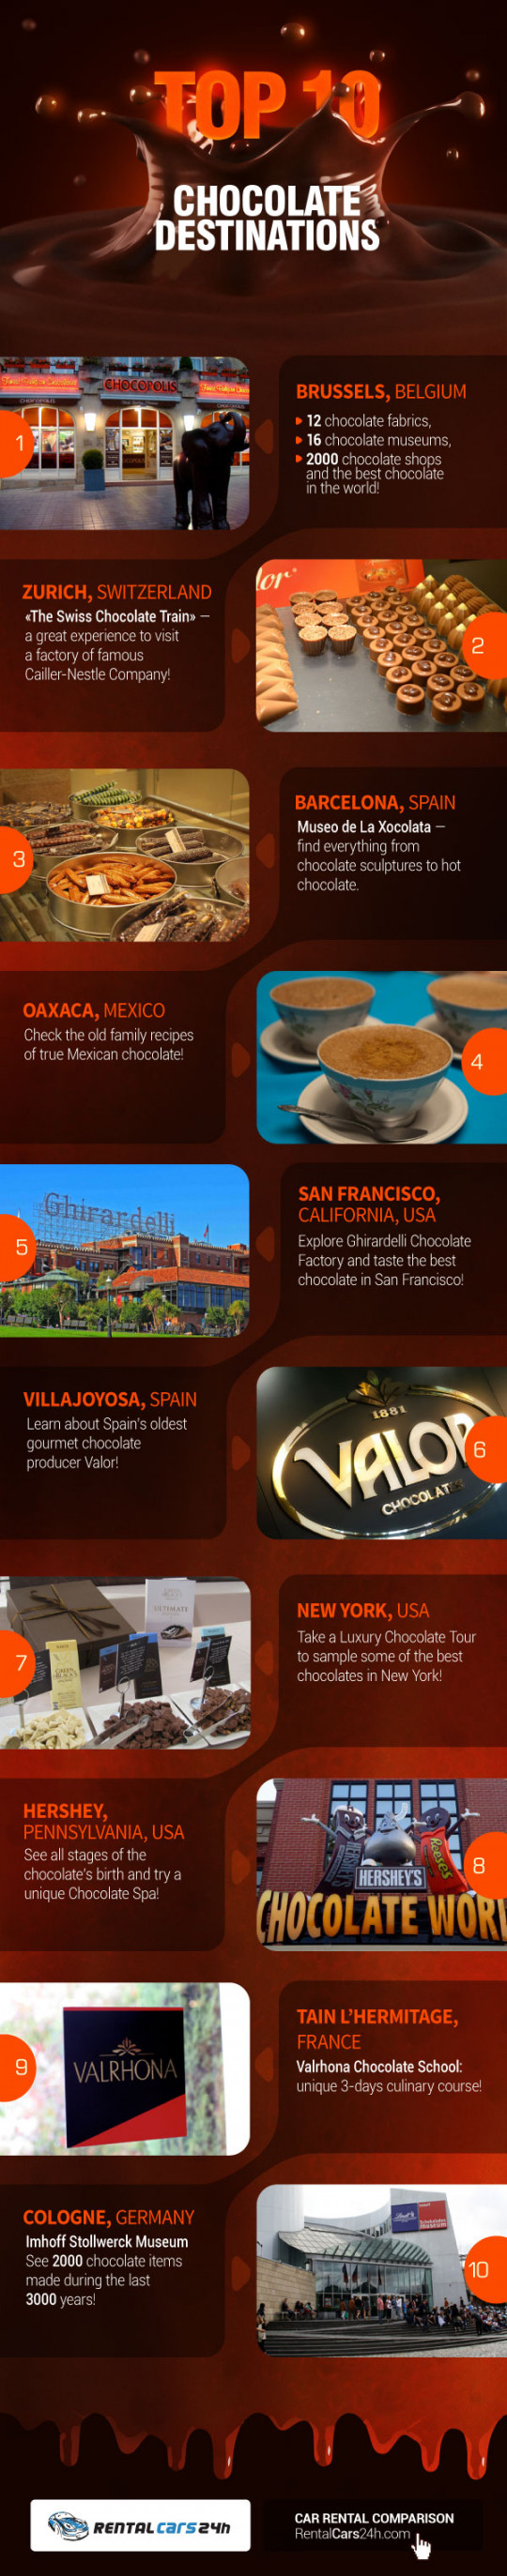 TOP 10 Chocolate Destinations